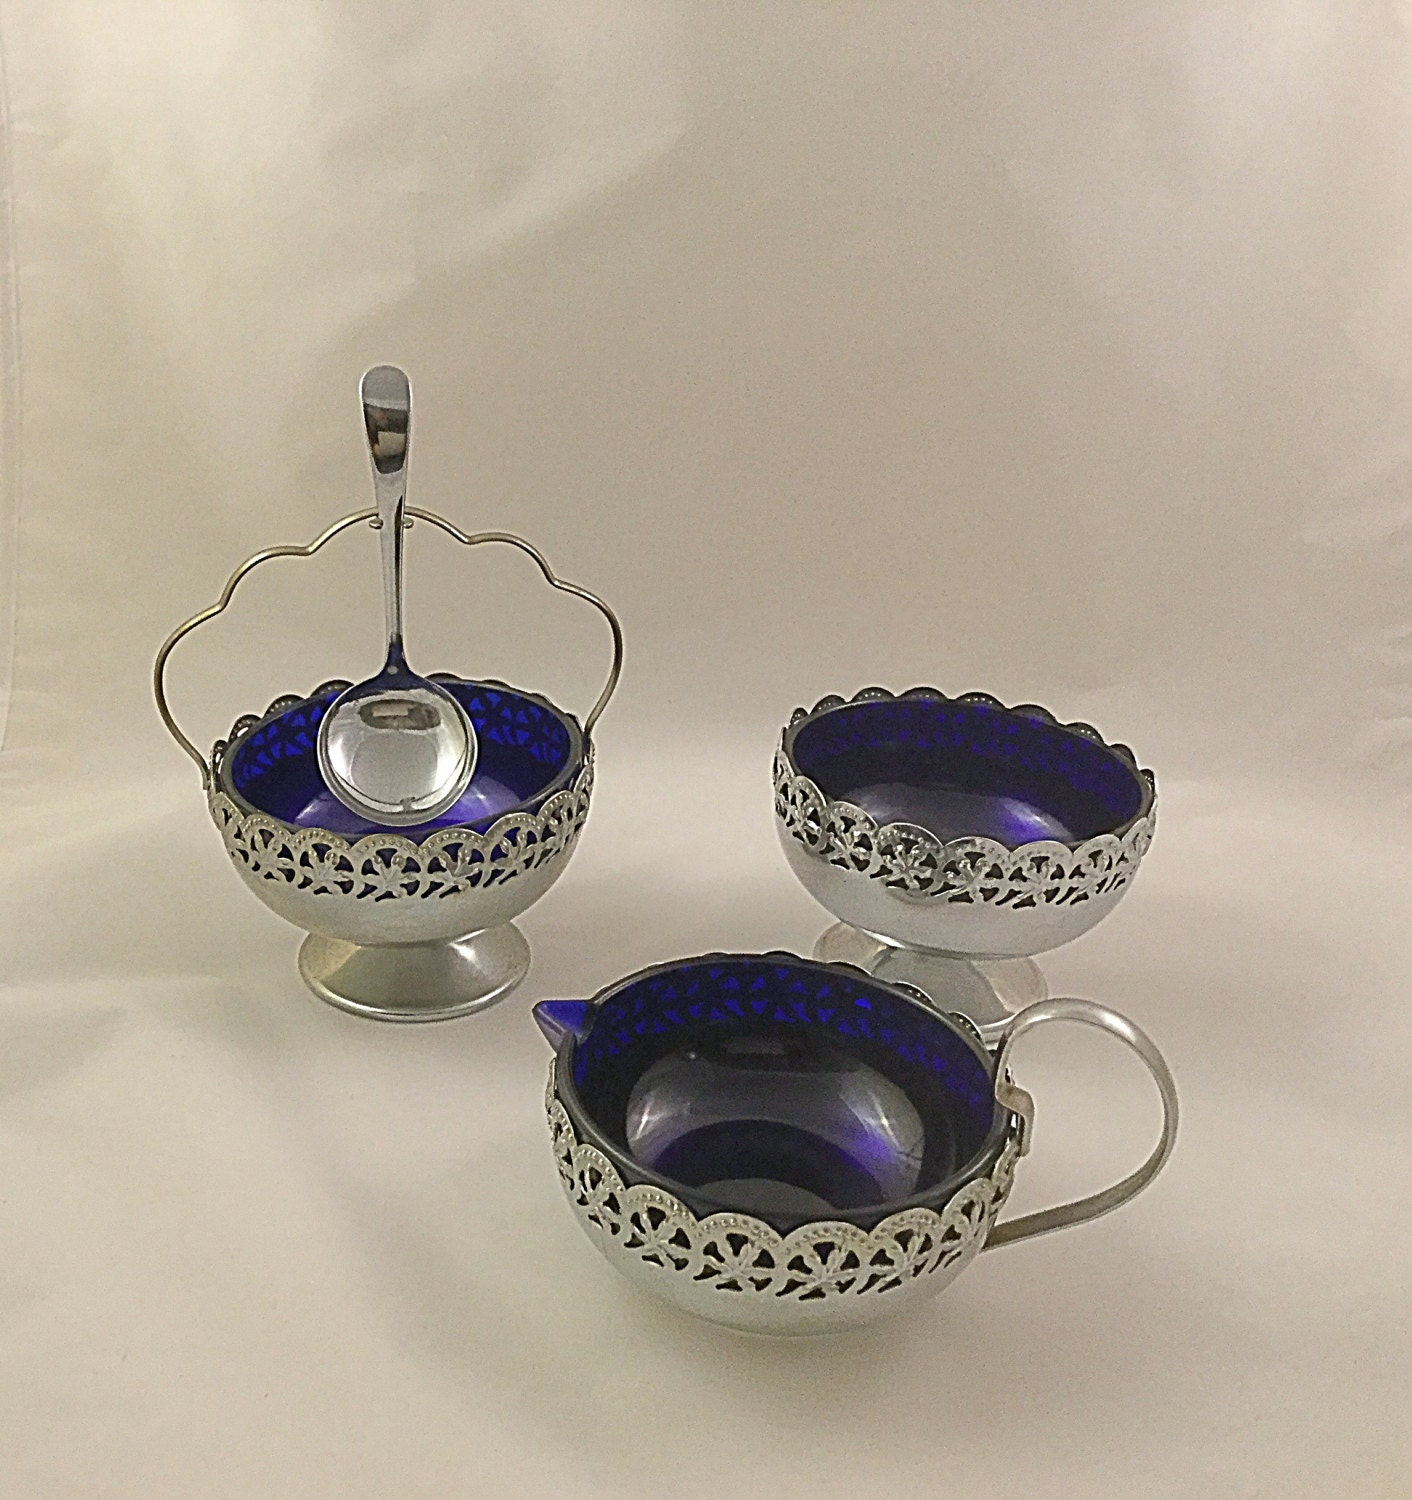 Vintage Cobalt Blue Glass Breakfast SetVintage milksugar and preserve jar.